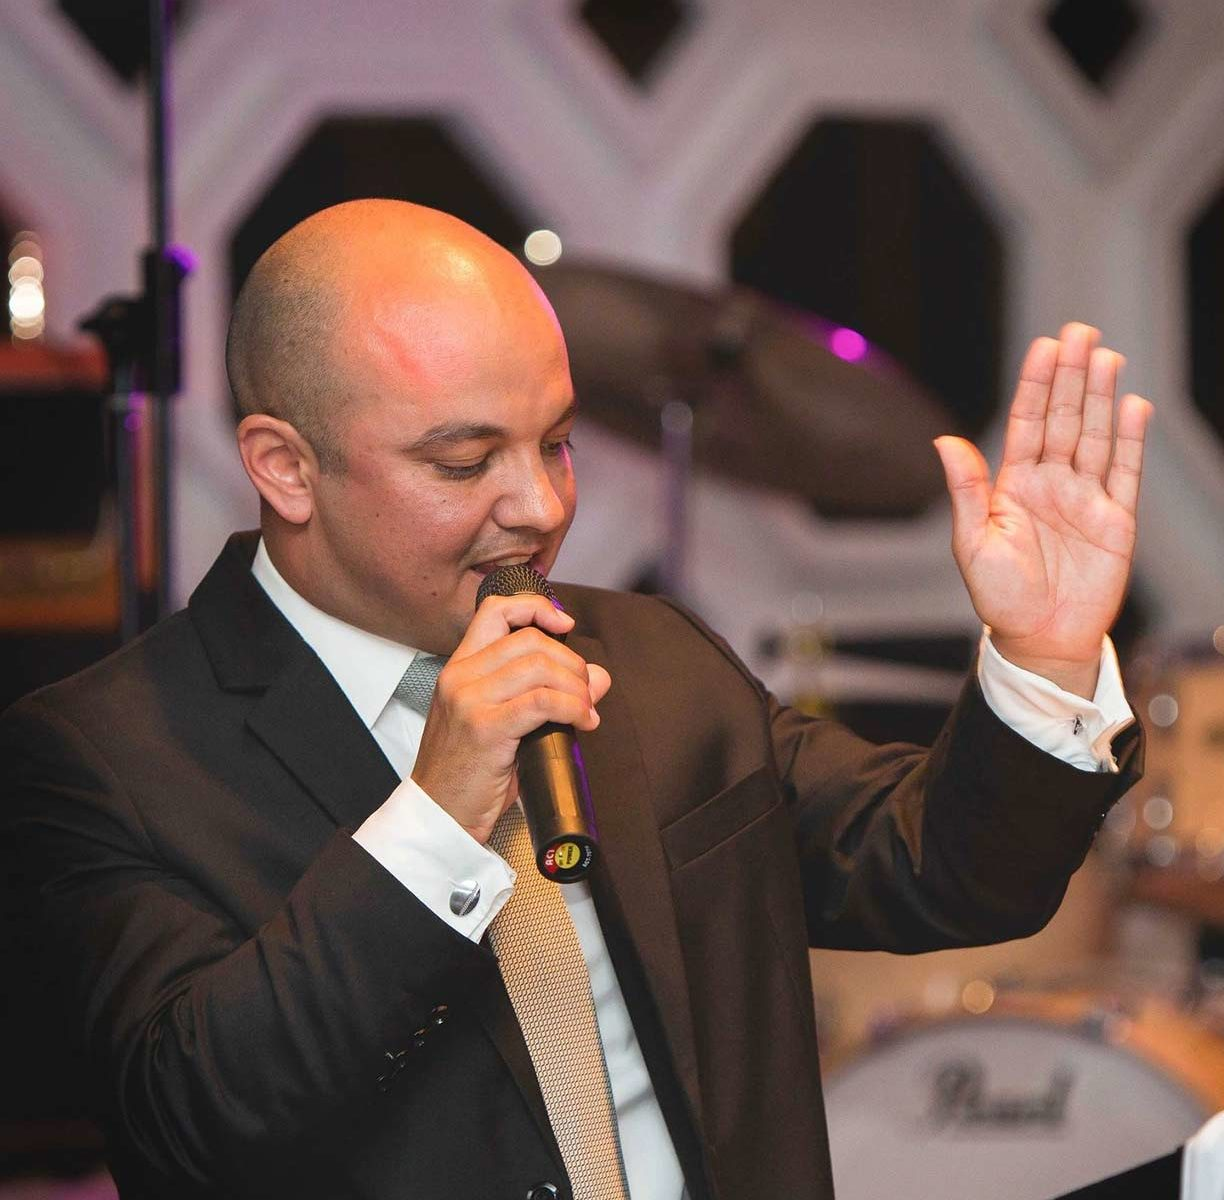 Jason Kazanis is one of the best fundraising auctioneers